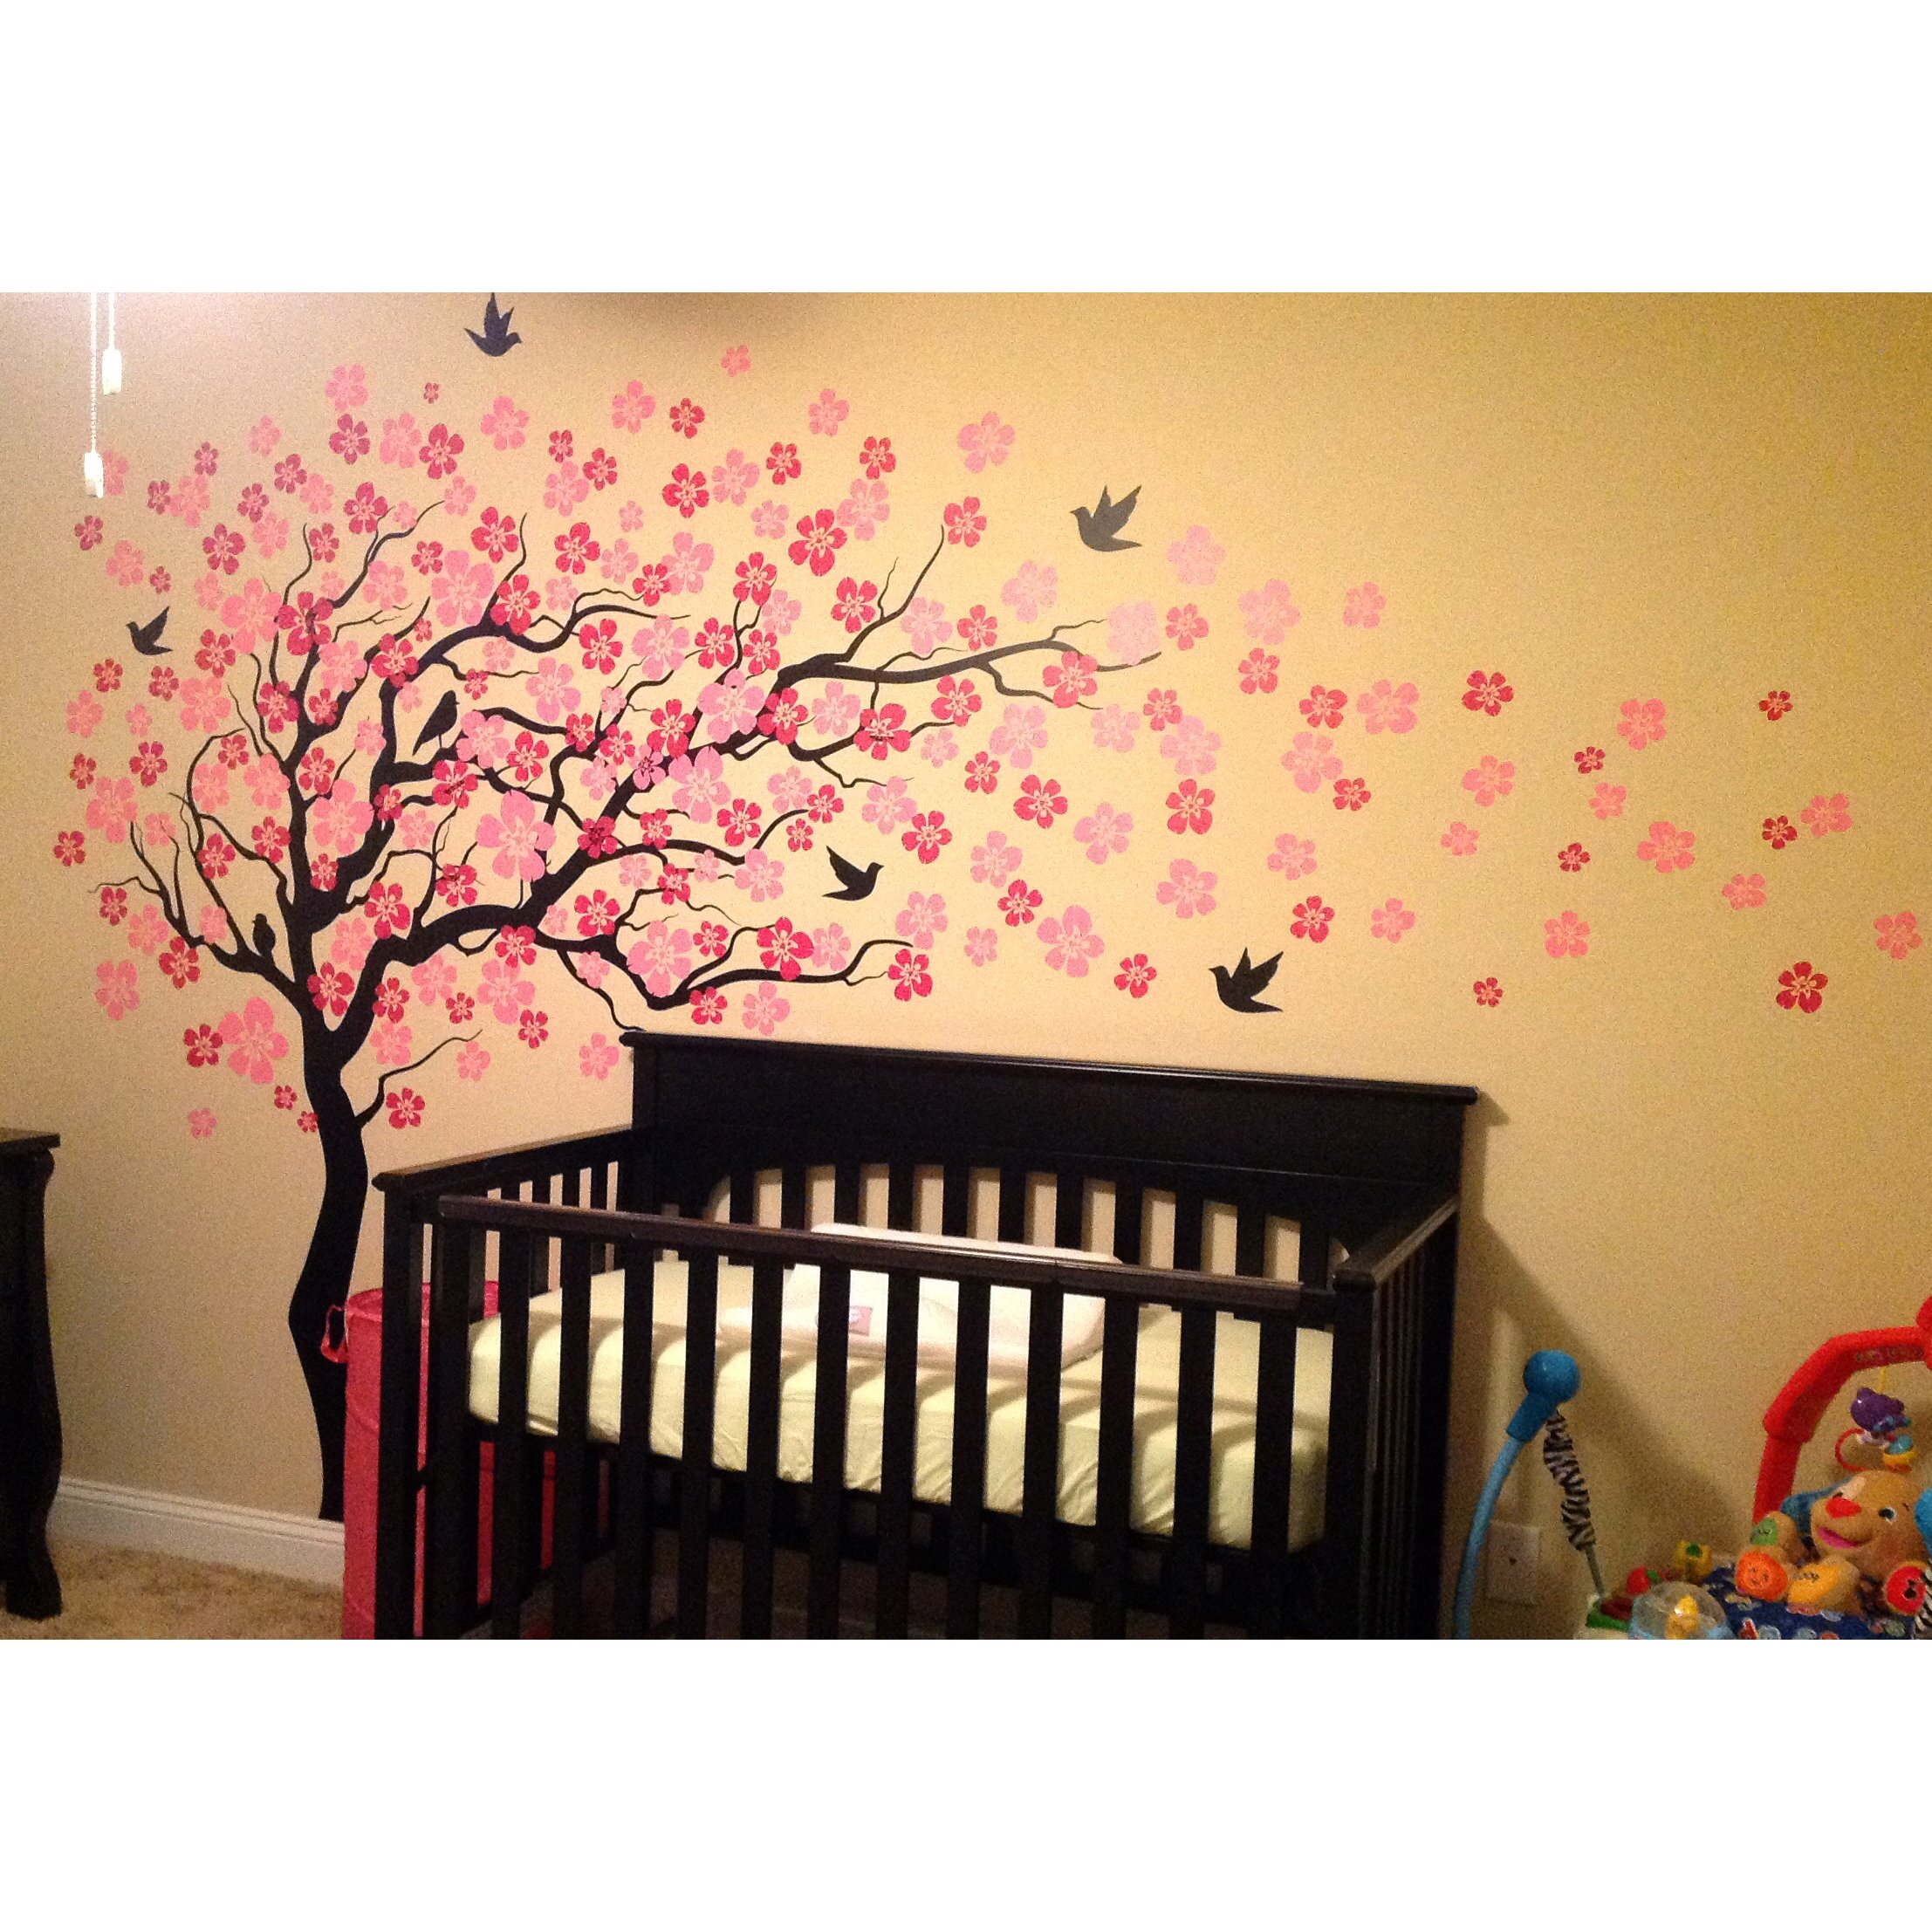 Cherry Blossom Tree Wall Decal Roselawnlutheran - Custom vinyl wall decals cherry blossom tree